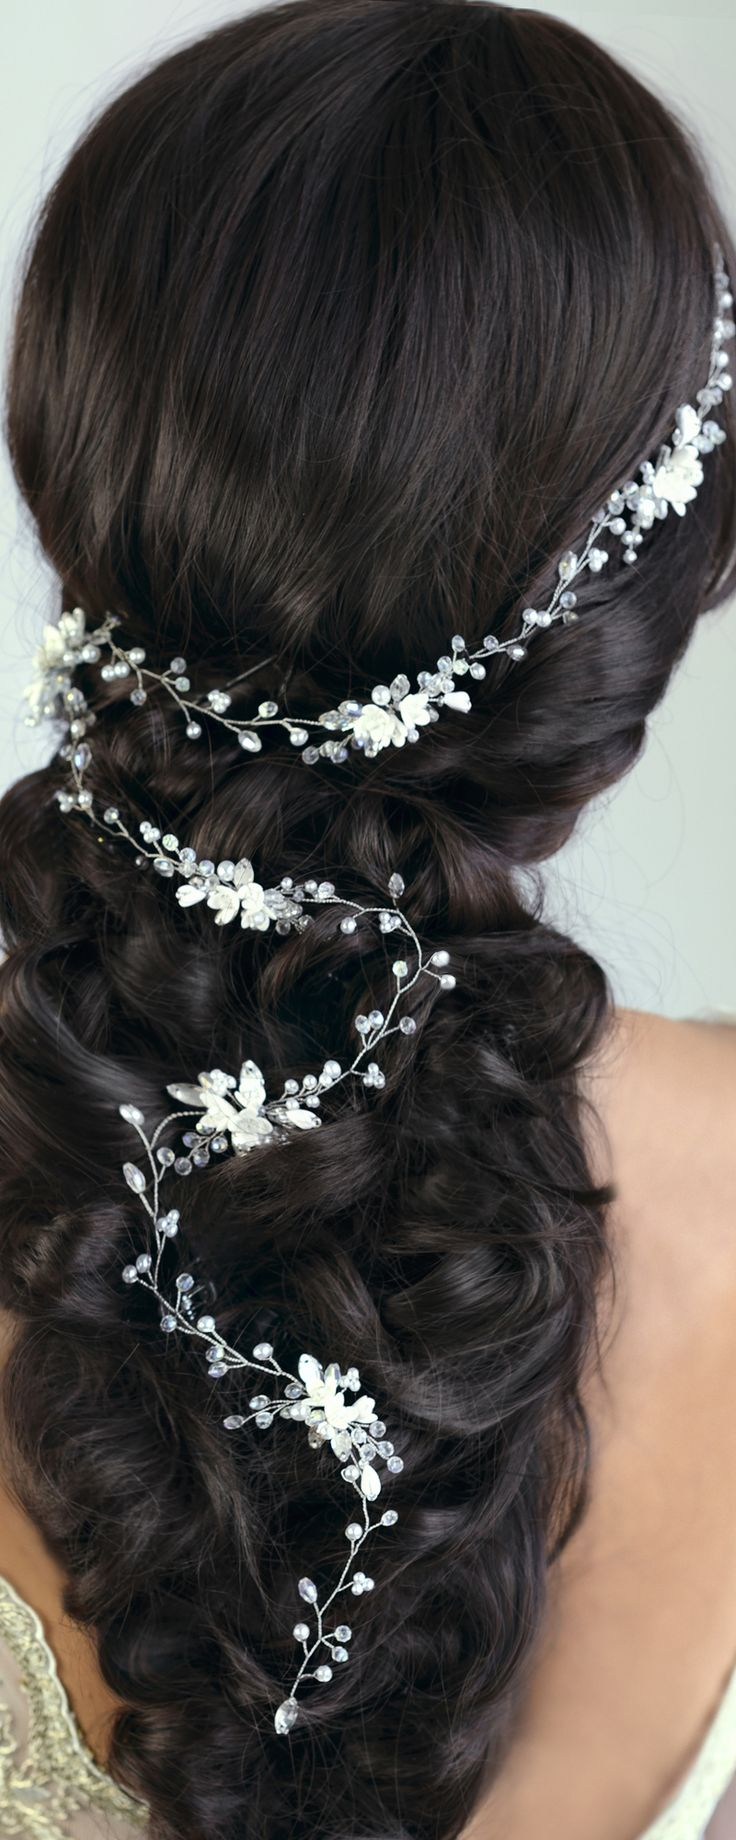 bridal hair vine, wedding hair vine, gold hair vine, pearl hair vine, flower hai...